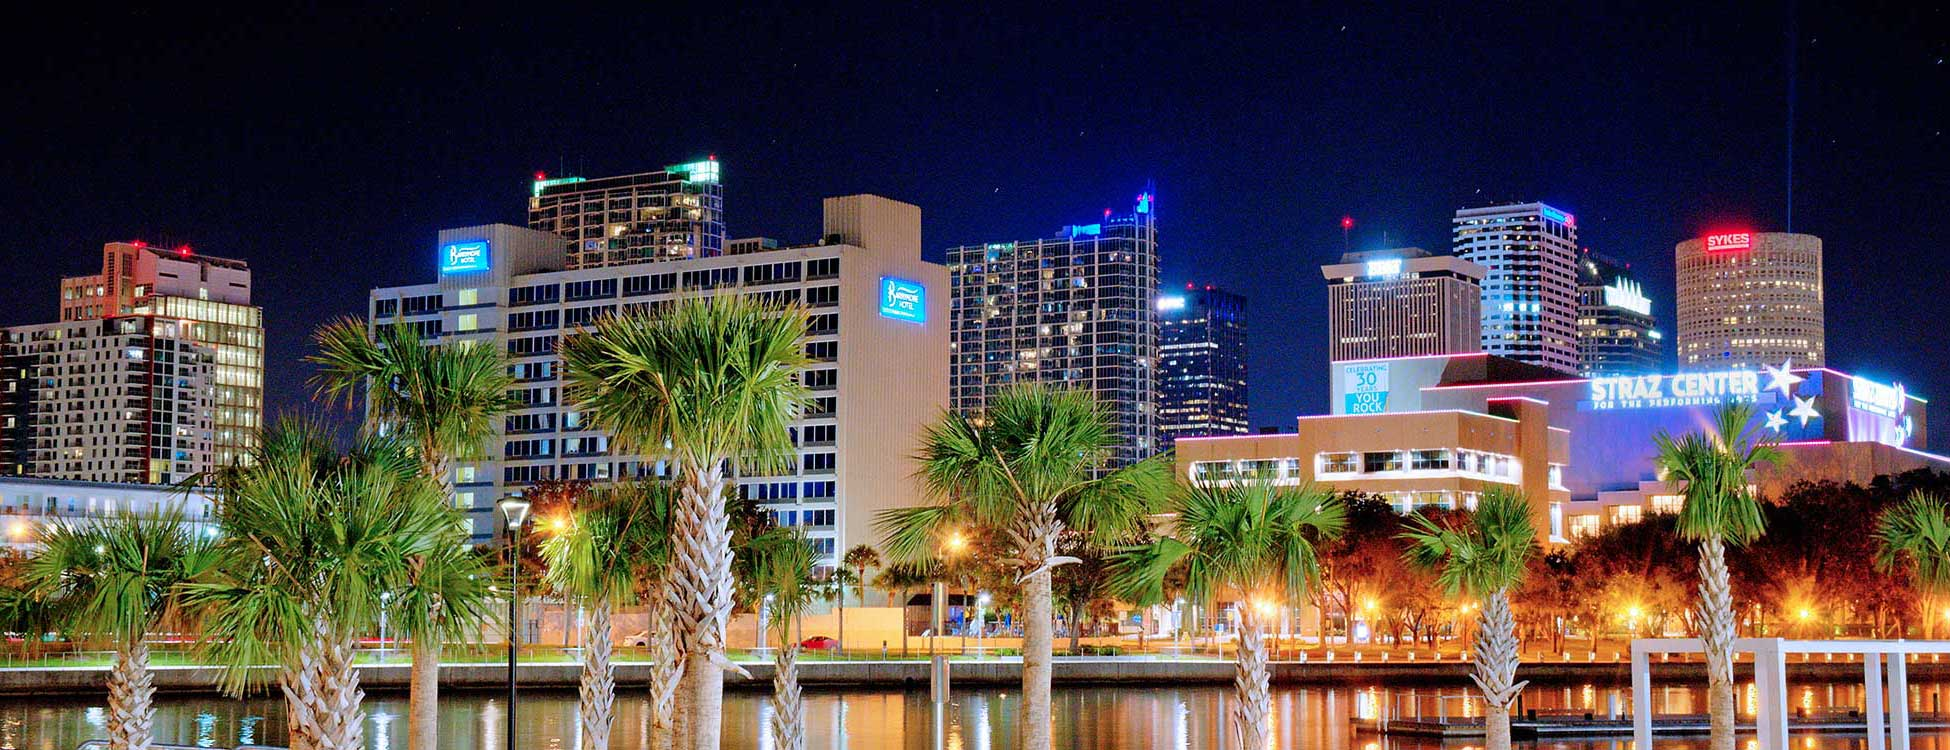 Hotels In Tampa >> Tampa Hotels Downtown Tampa Hotels The Barrymore Hotel